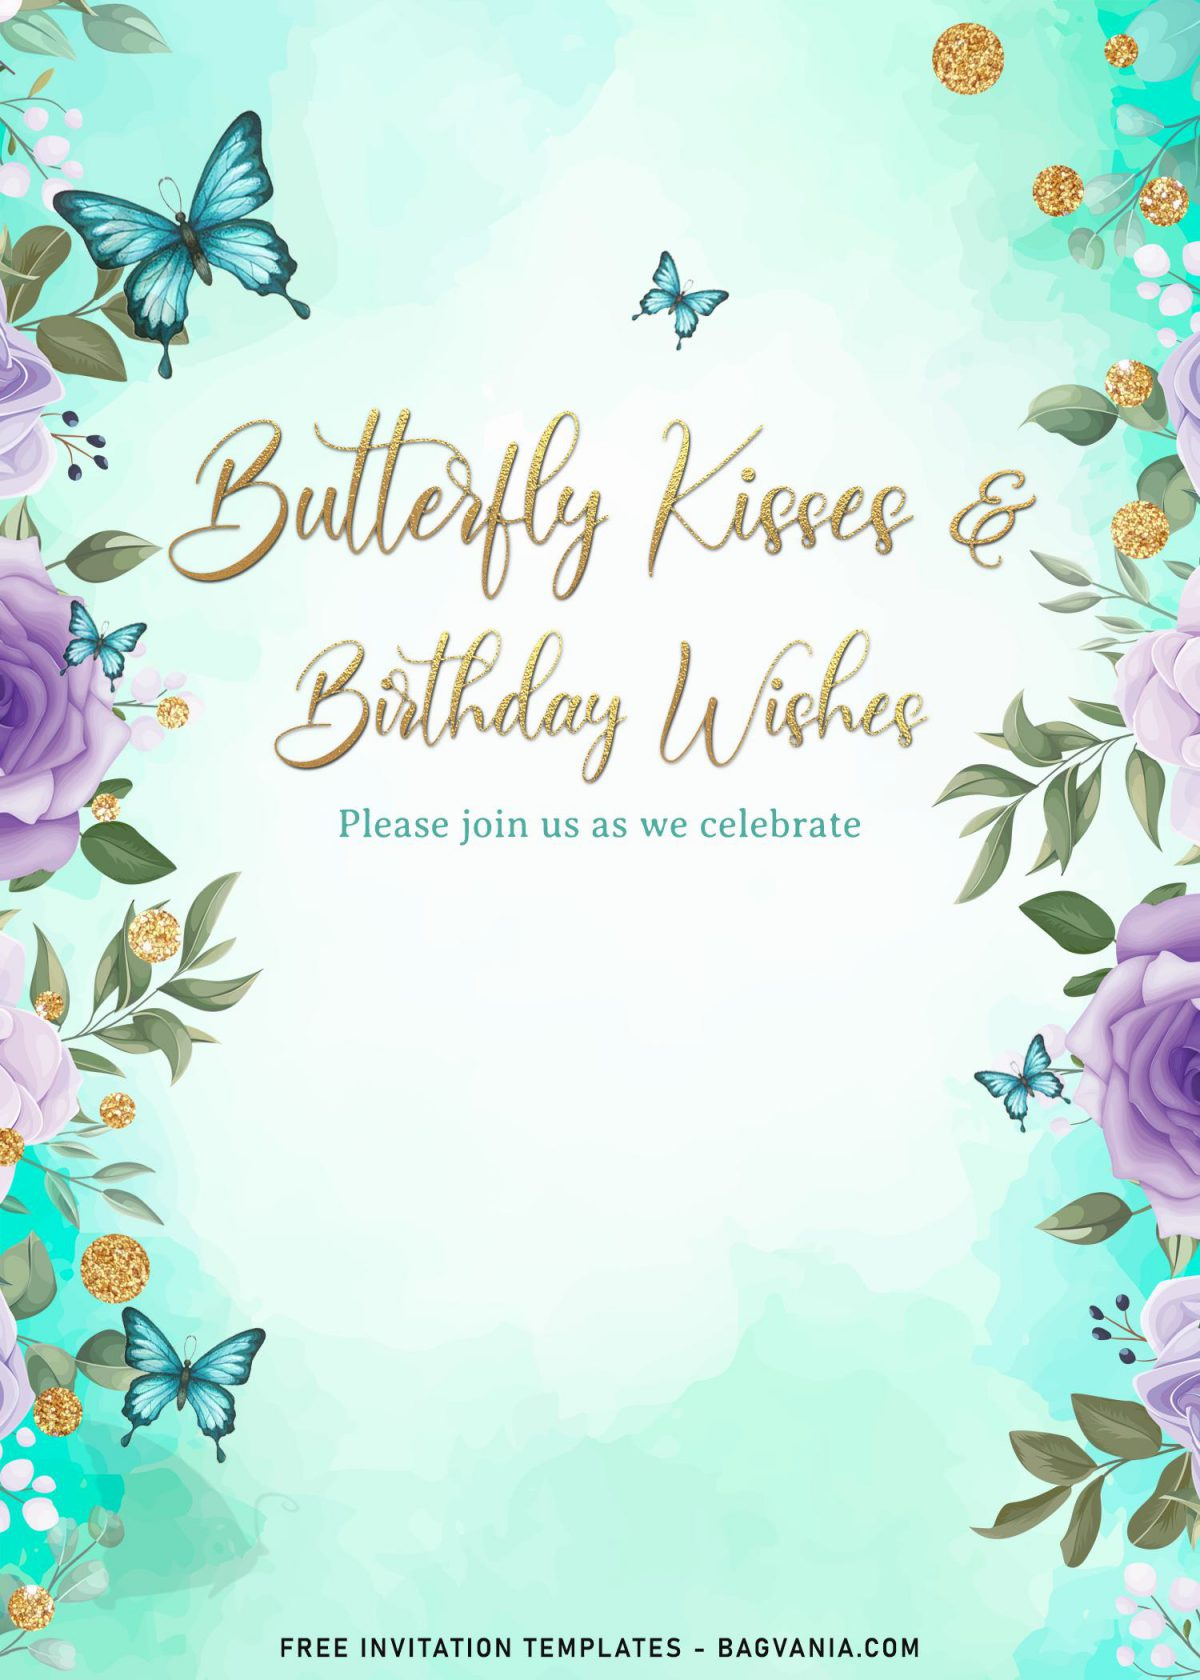 7+ Magical Watercolor Butterfly Birthday Invitation Templates and has custom floral border